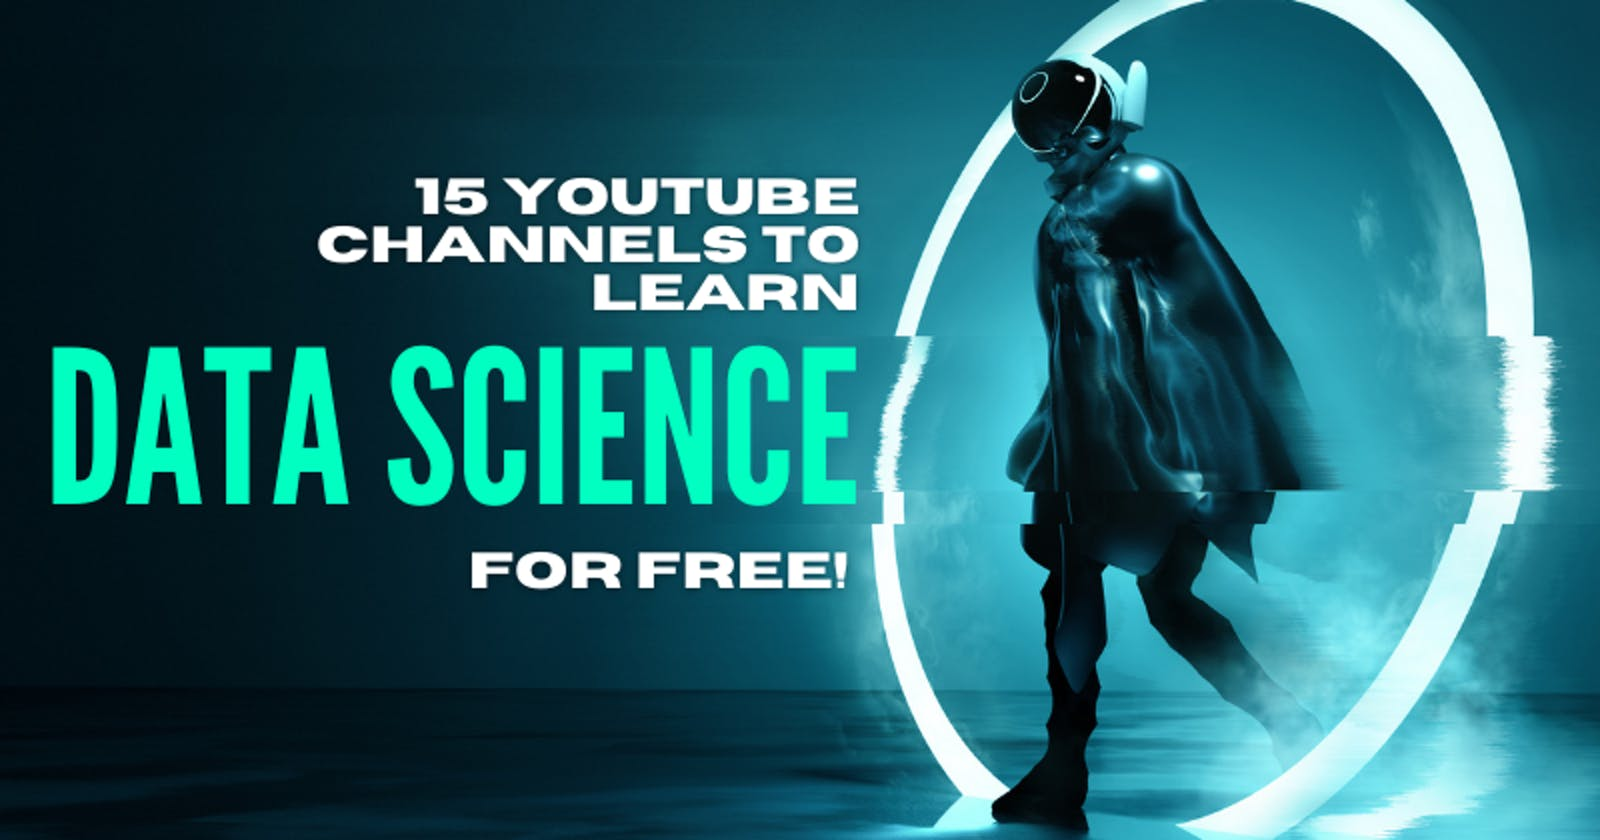 15 YouTube Channels to Learn Data Science for Free